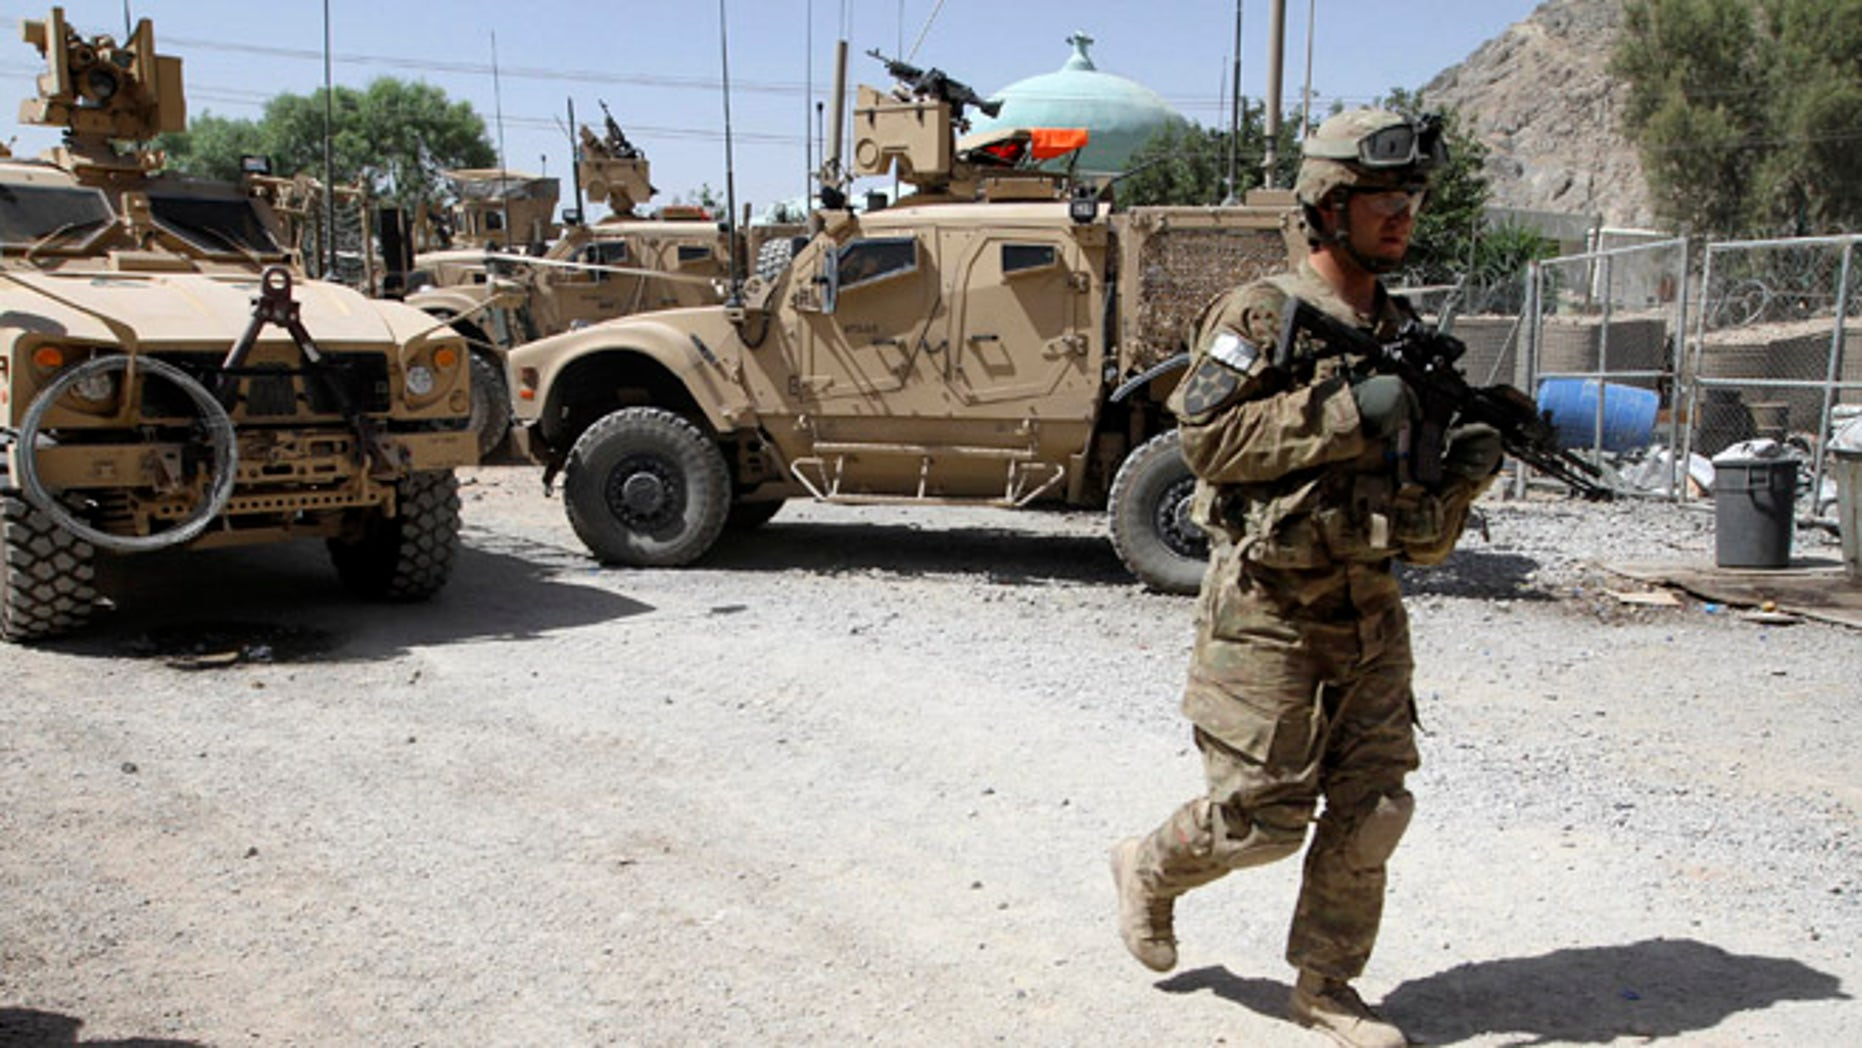 File: June 19, 2012: A US soldier, part of the NATO forces, patrols a police station in Kandahar, south of Kabul, Afghanistan.